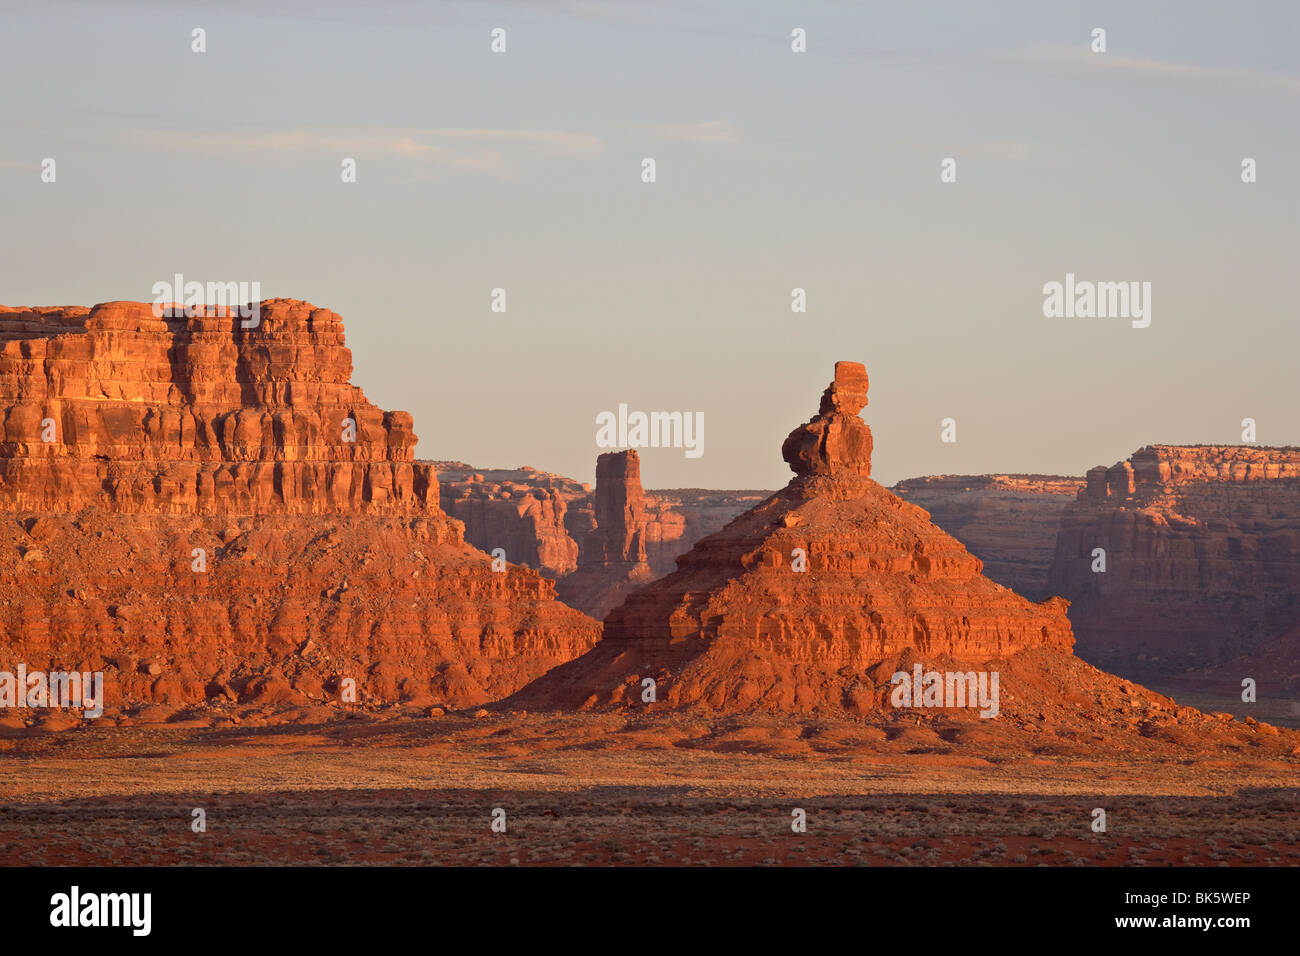 Rock formations at first light, Valley of the Gods, Utah, United States of America, North America - Stock Image